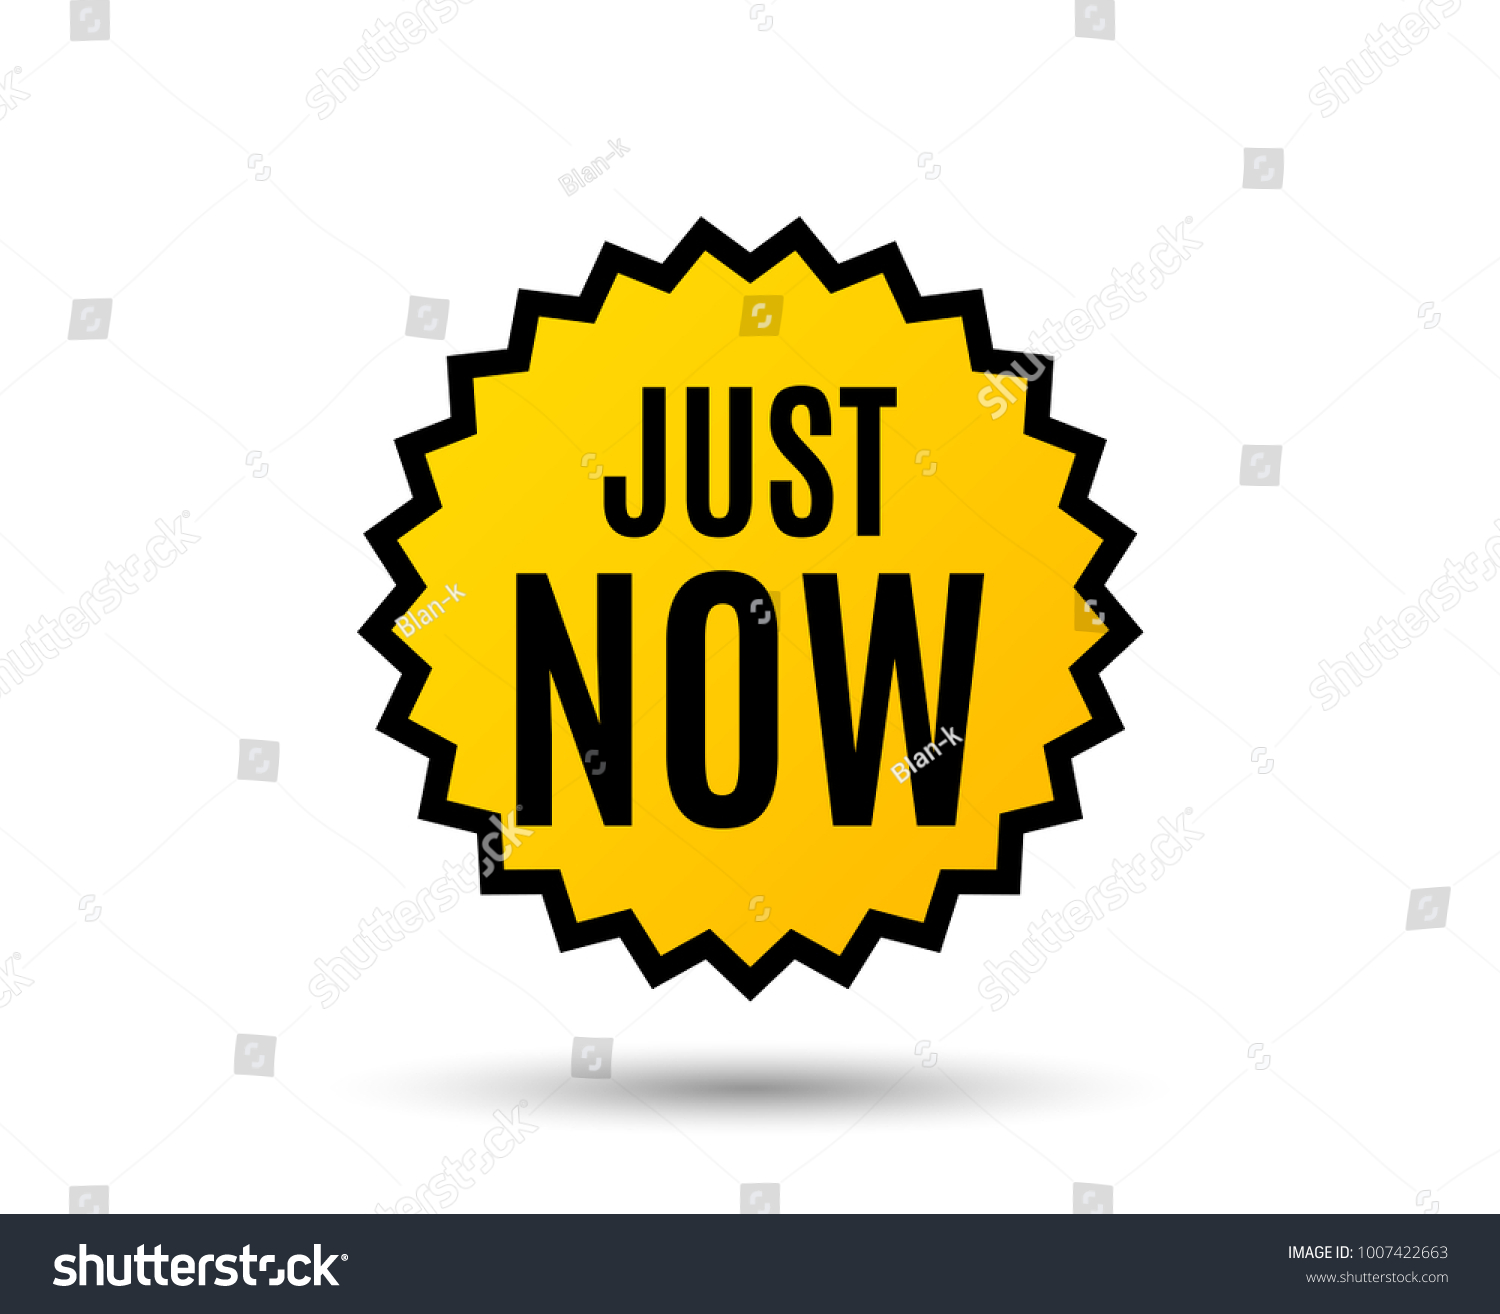 Just now symbol special offer sign stock vector 1007422663 just now symbol special offer sign sale star button graphic design element buycottarizona